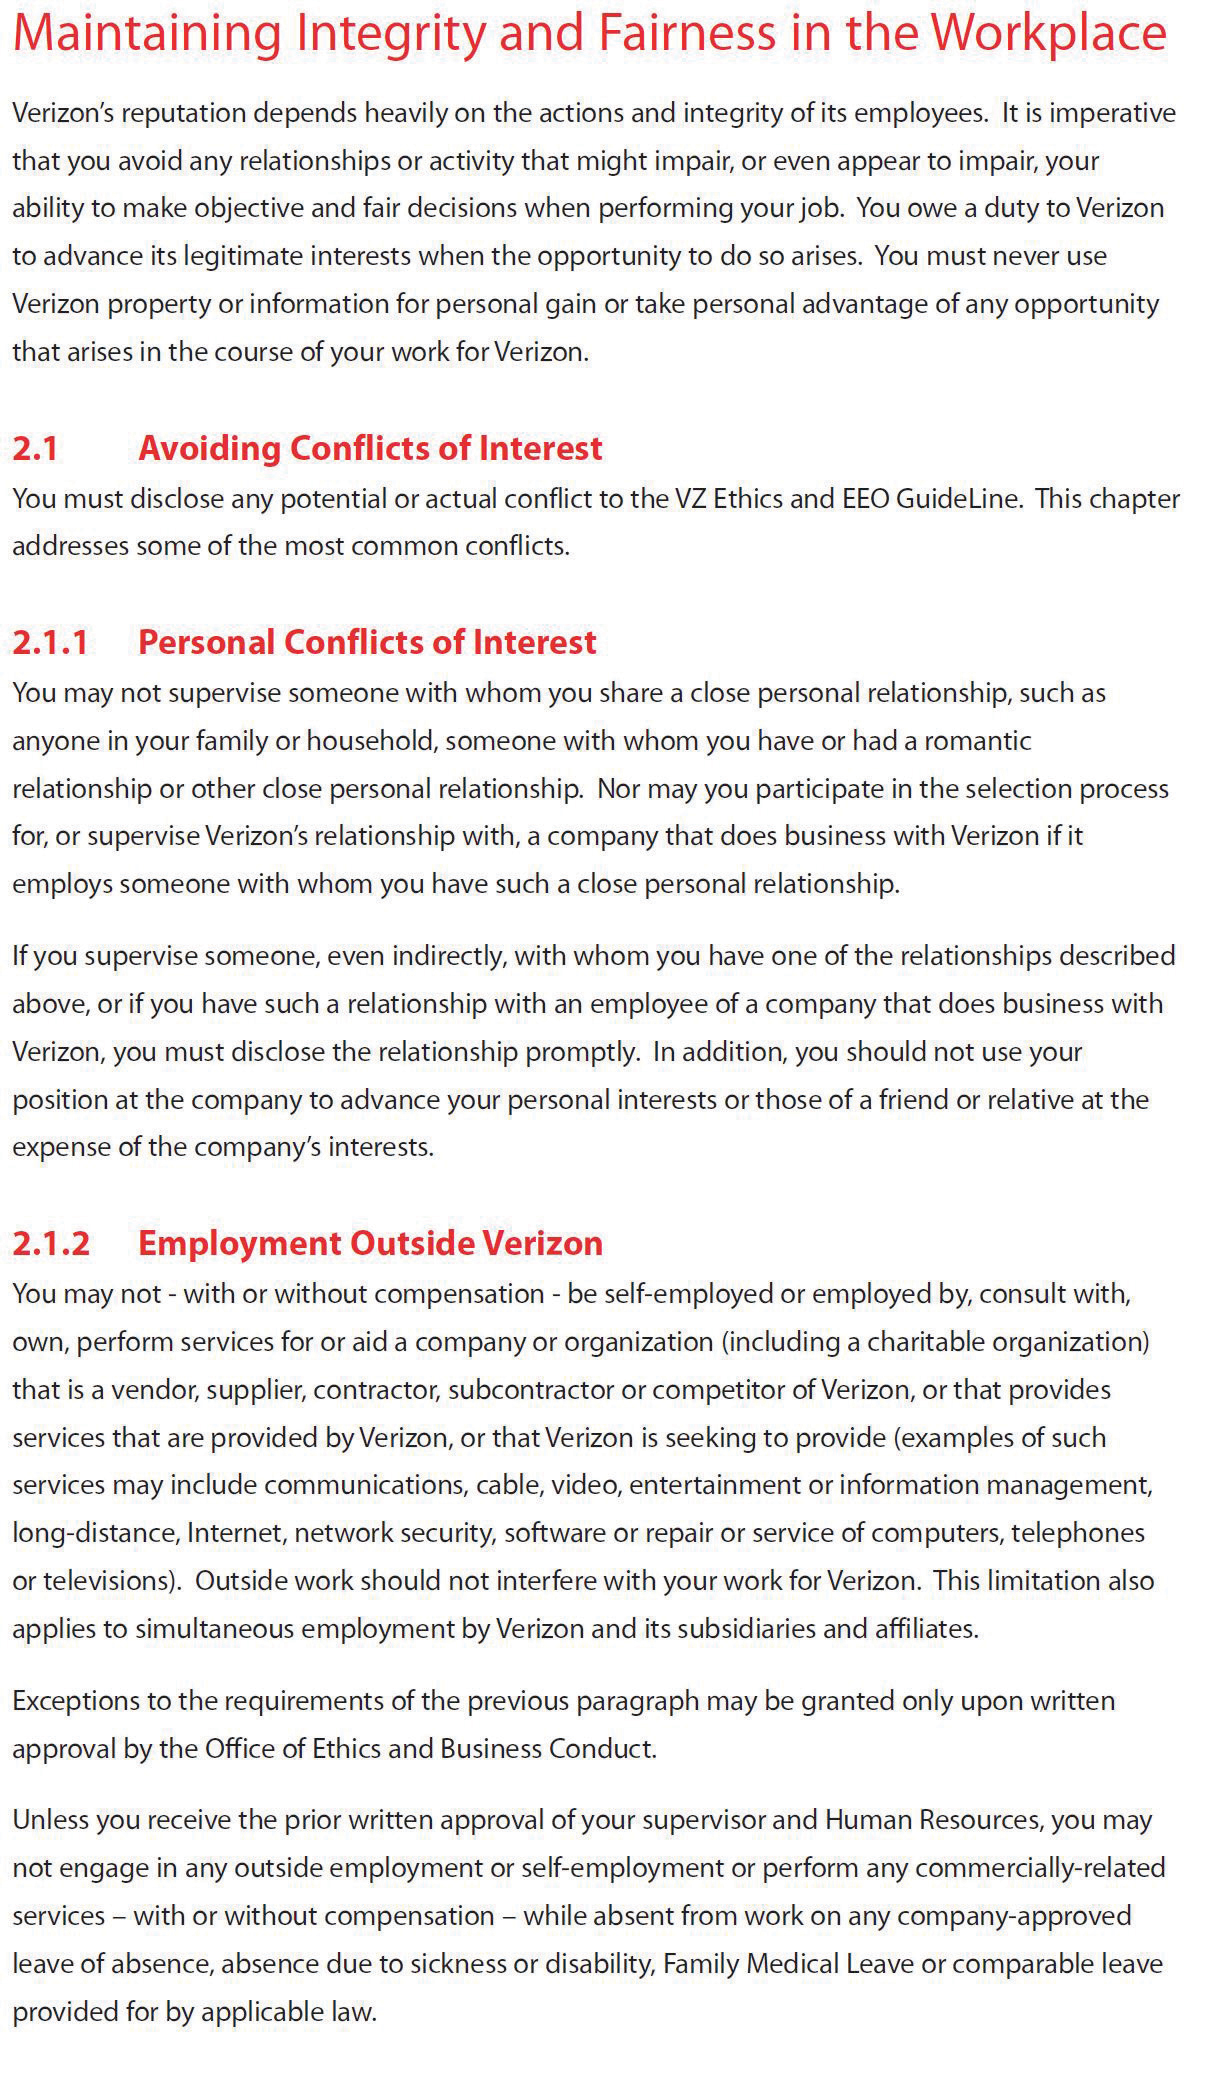 social responsibility in business organization essay Social responsibility essay corporate social responsibility marsh administration and organization professor zealand corporate social responsibility the issue that will be addressed is not only is an organizational level of ethics important, but social responsibility is also expected for any company doing business.